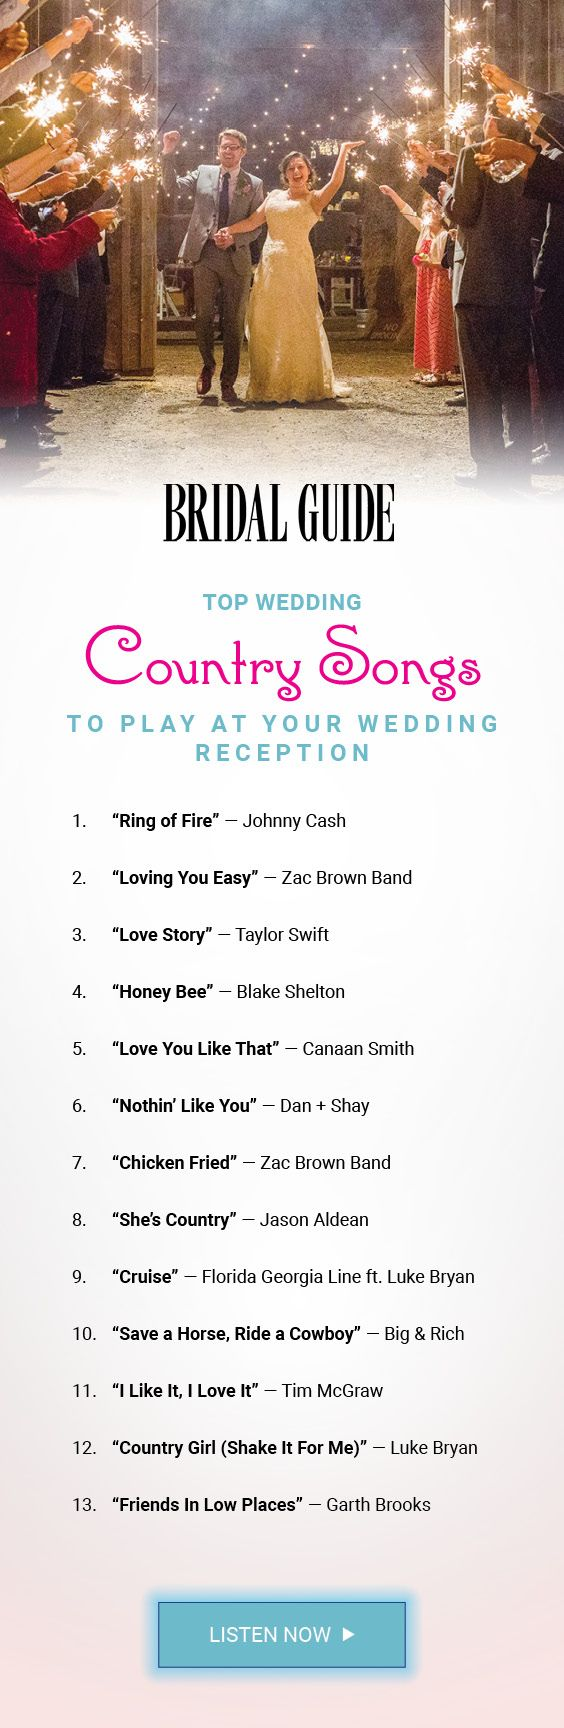 Get the party started at your wedding reception with these top country hits!